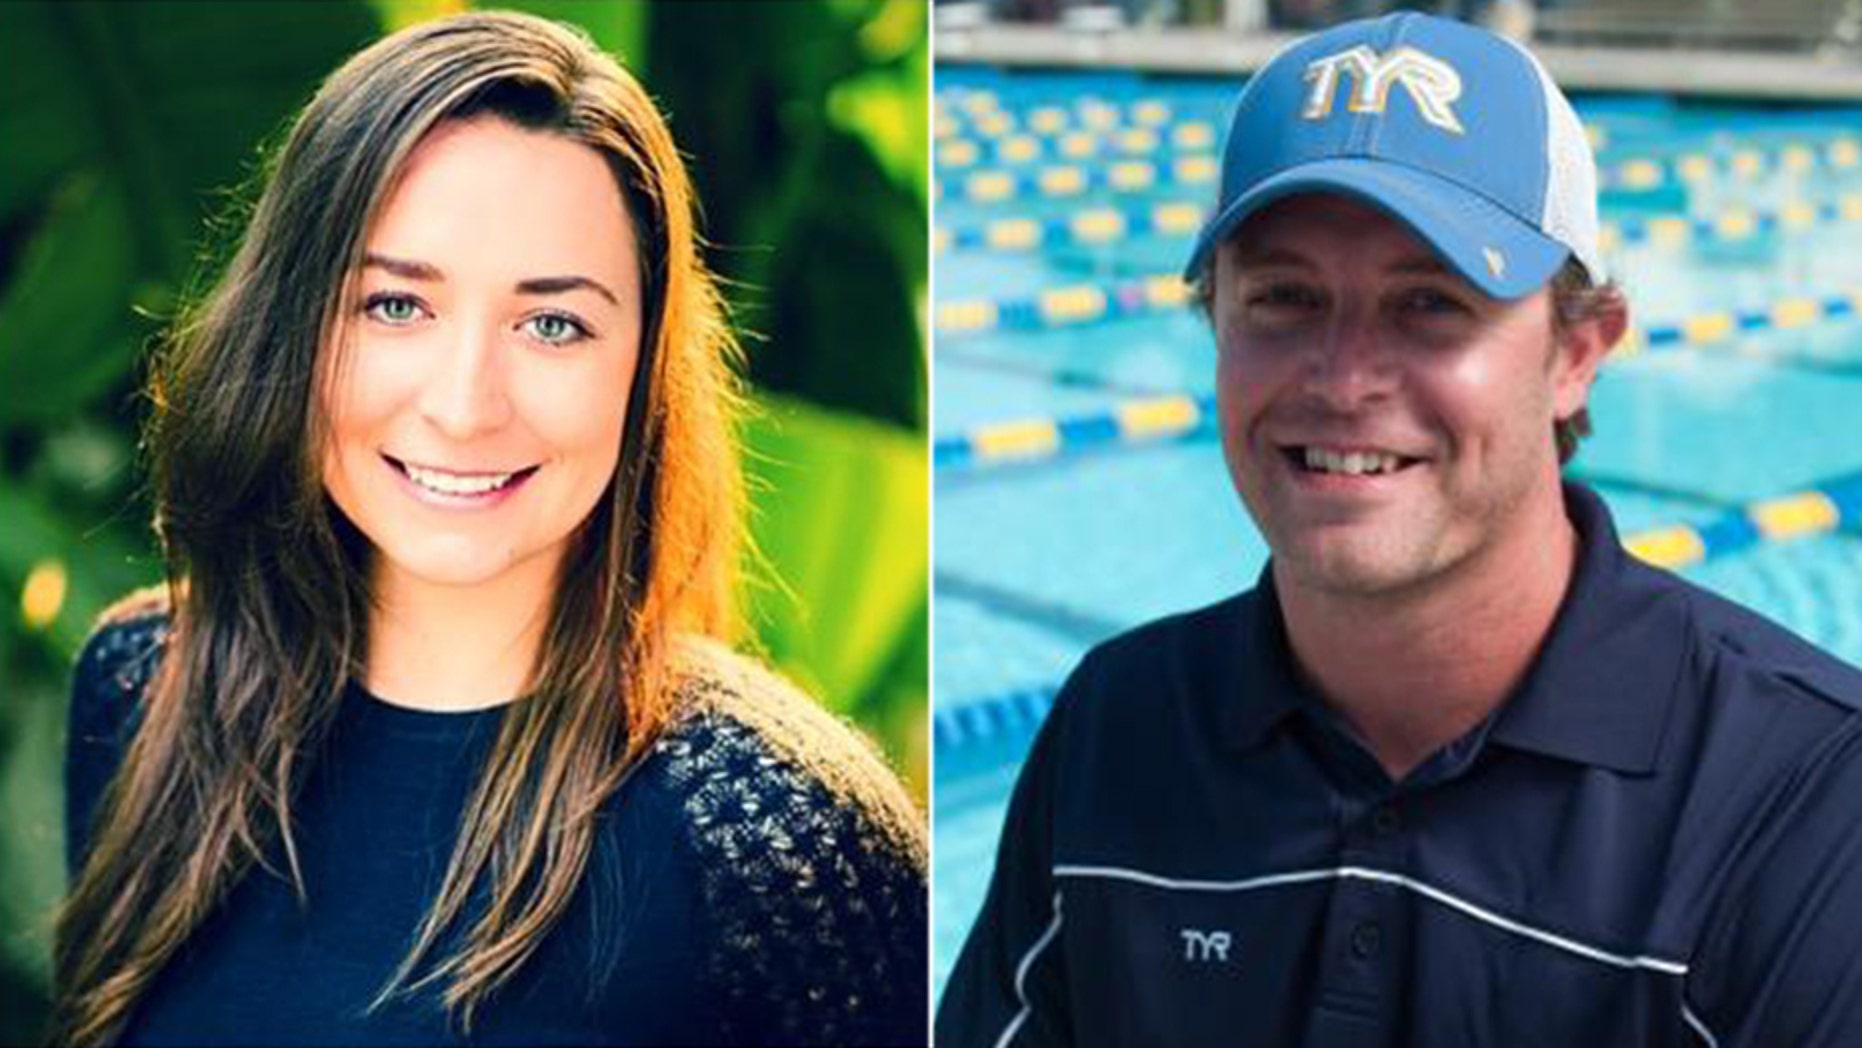 Olympian Ariana Kukors Smith (left) is suing USA Swimming, alleging it covered up sexual abuse by her former coach, Sean Hutchison (right). (Twitter / TYR Sport, Inc.)